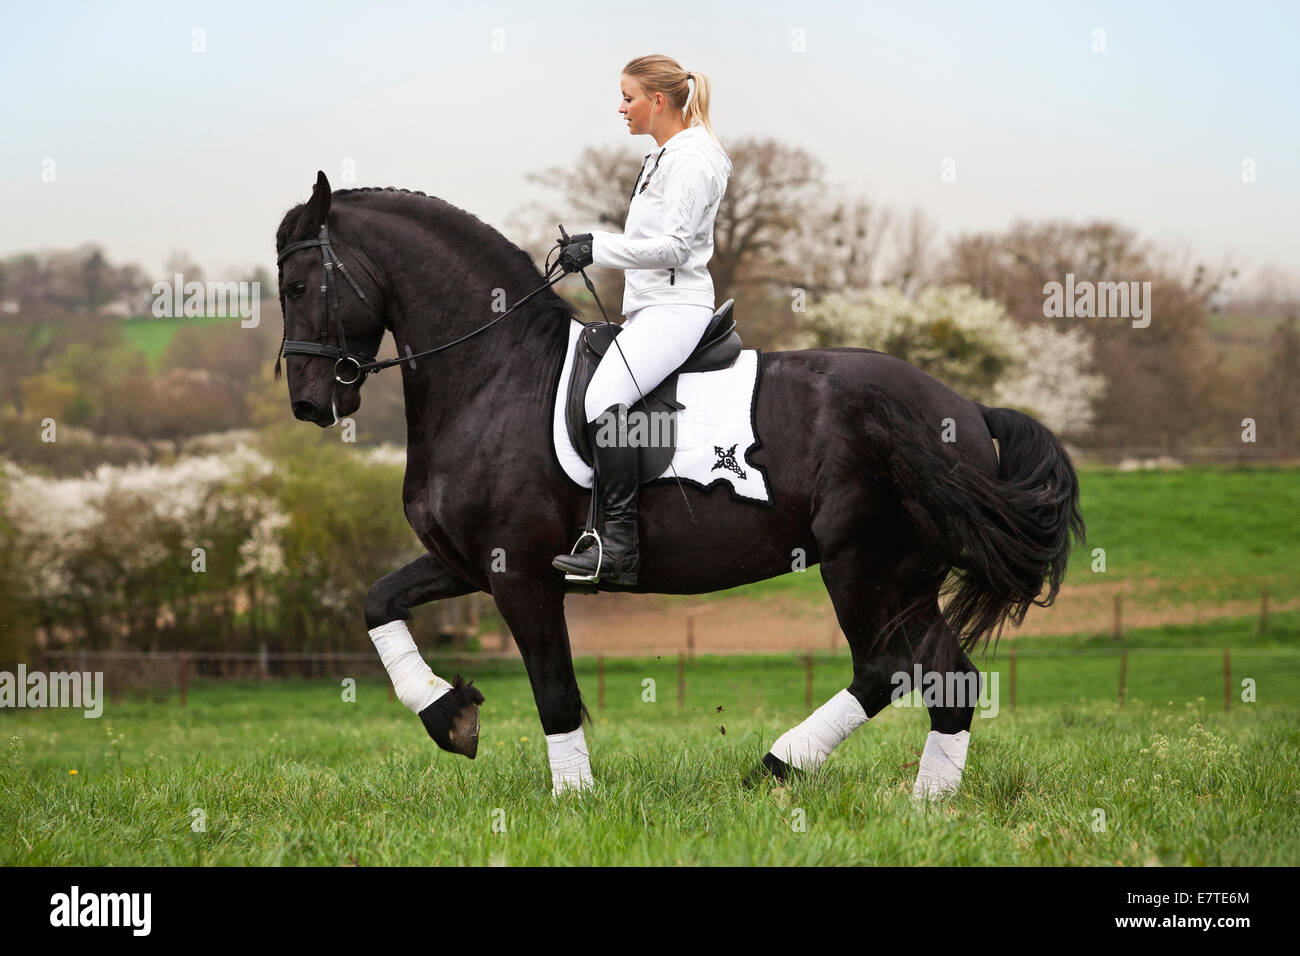 Friesian or Frisian horse, stallion with a female rider on horseback, on a meadow, classical dressage, piaffe on - Stock Image